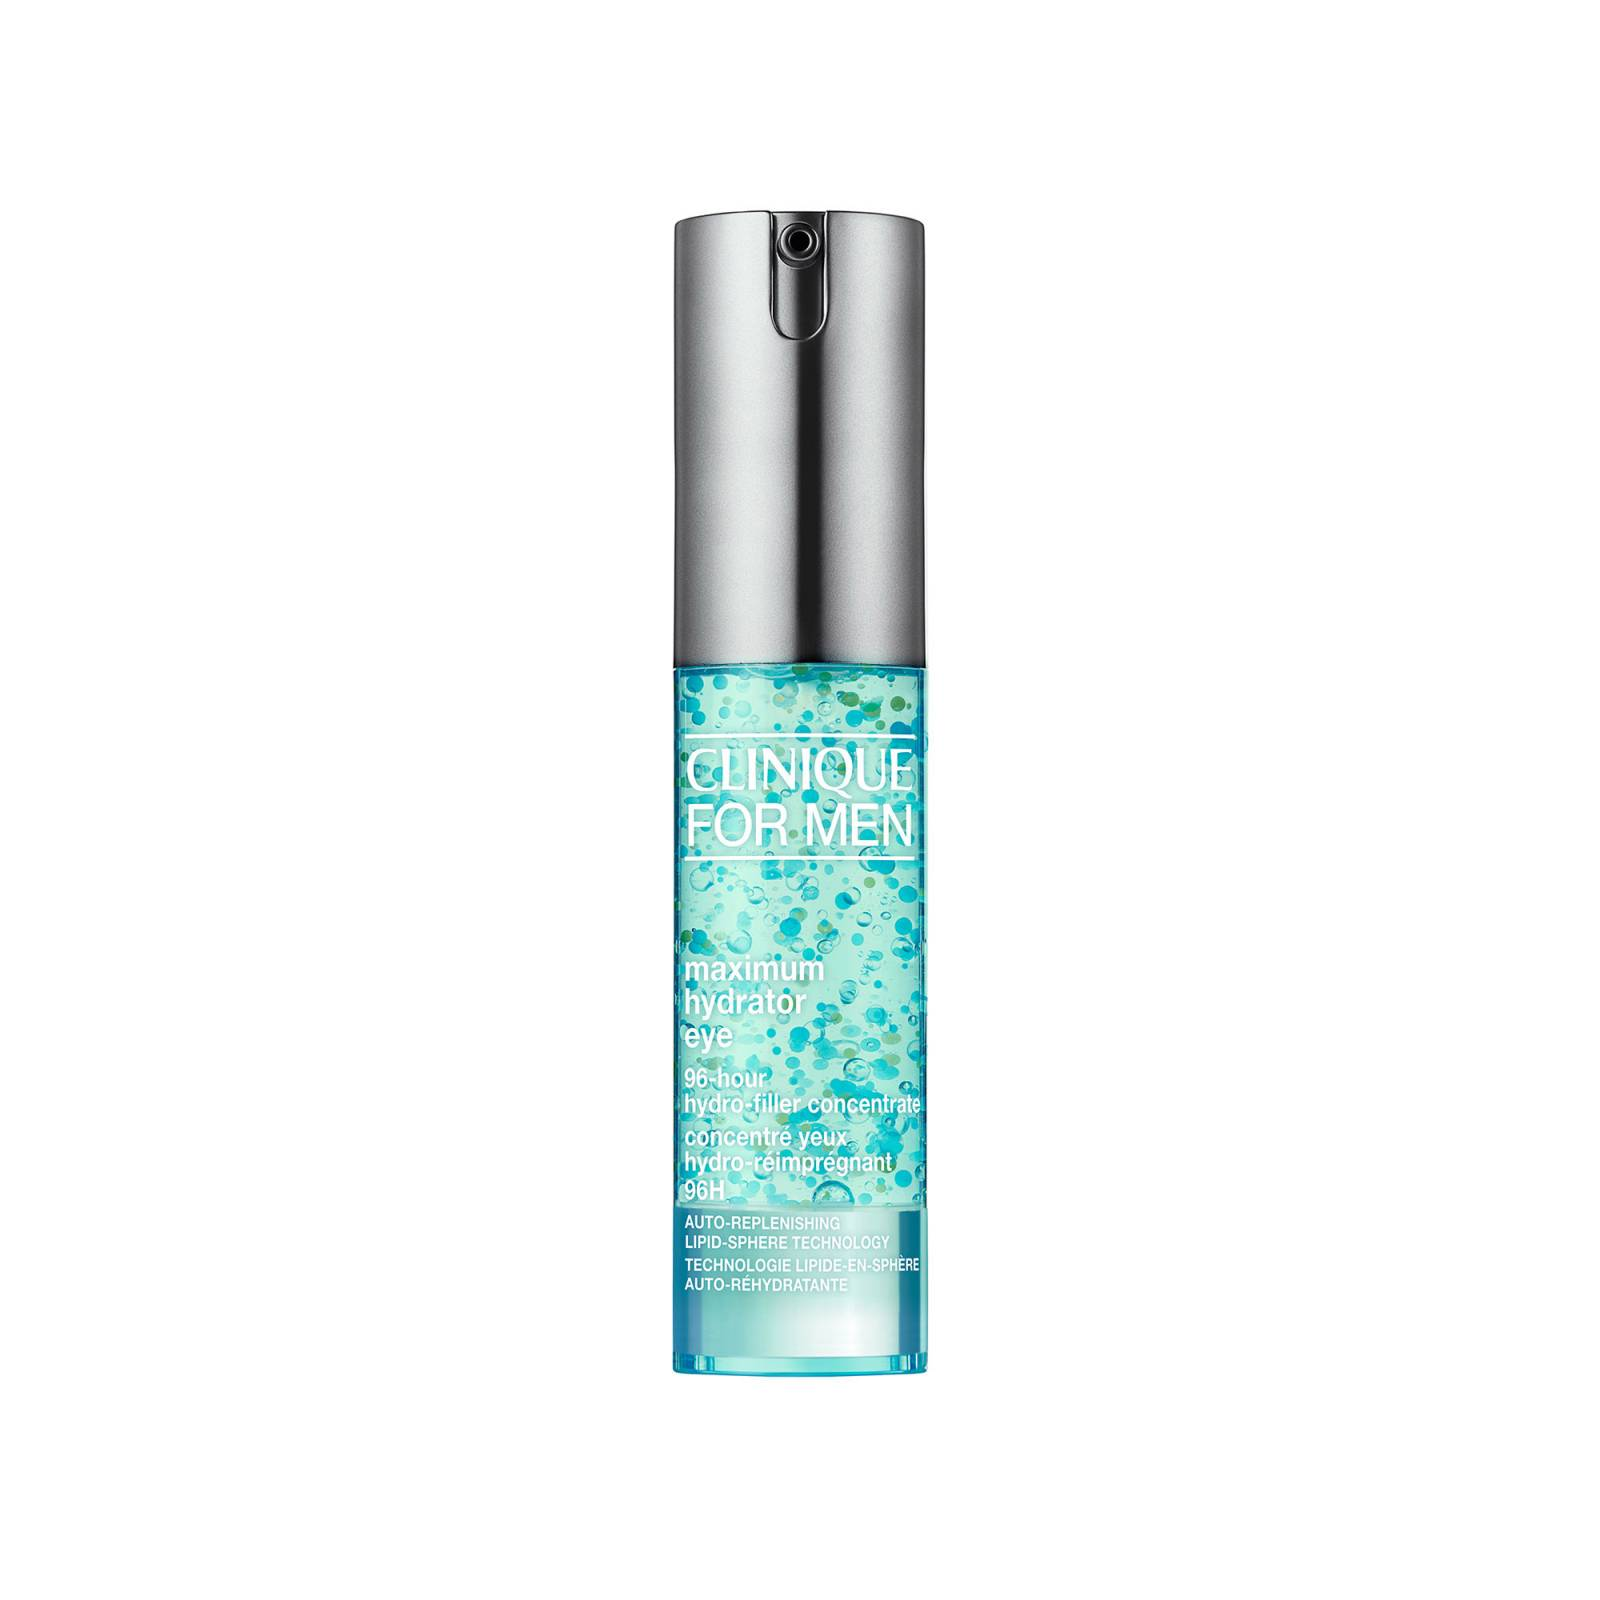 Clinique for Men Maximum Hydrator Eye 96-Hour Hydro-Filler Concentrate, Clinique, 15ml/ 135 pln / (Fot. Materiały prasowe)